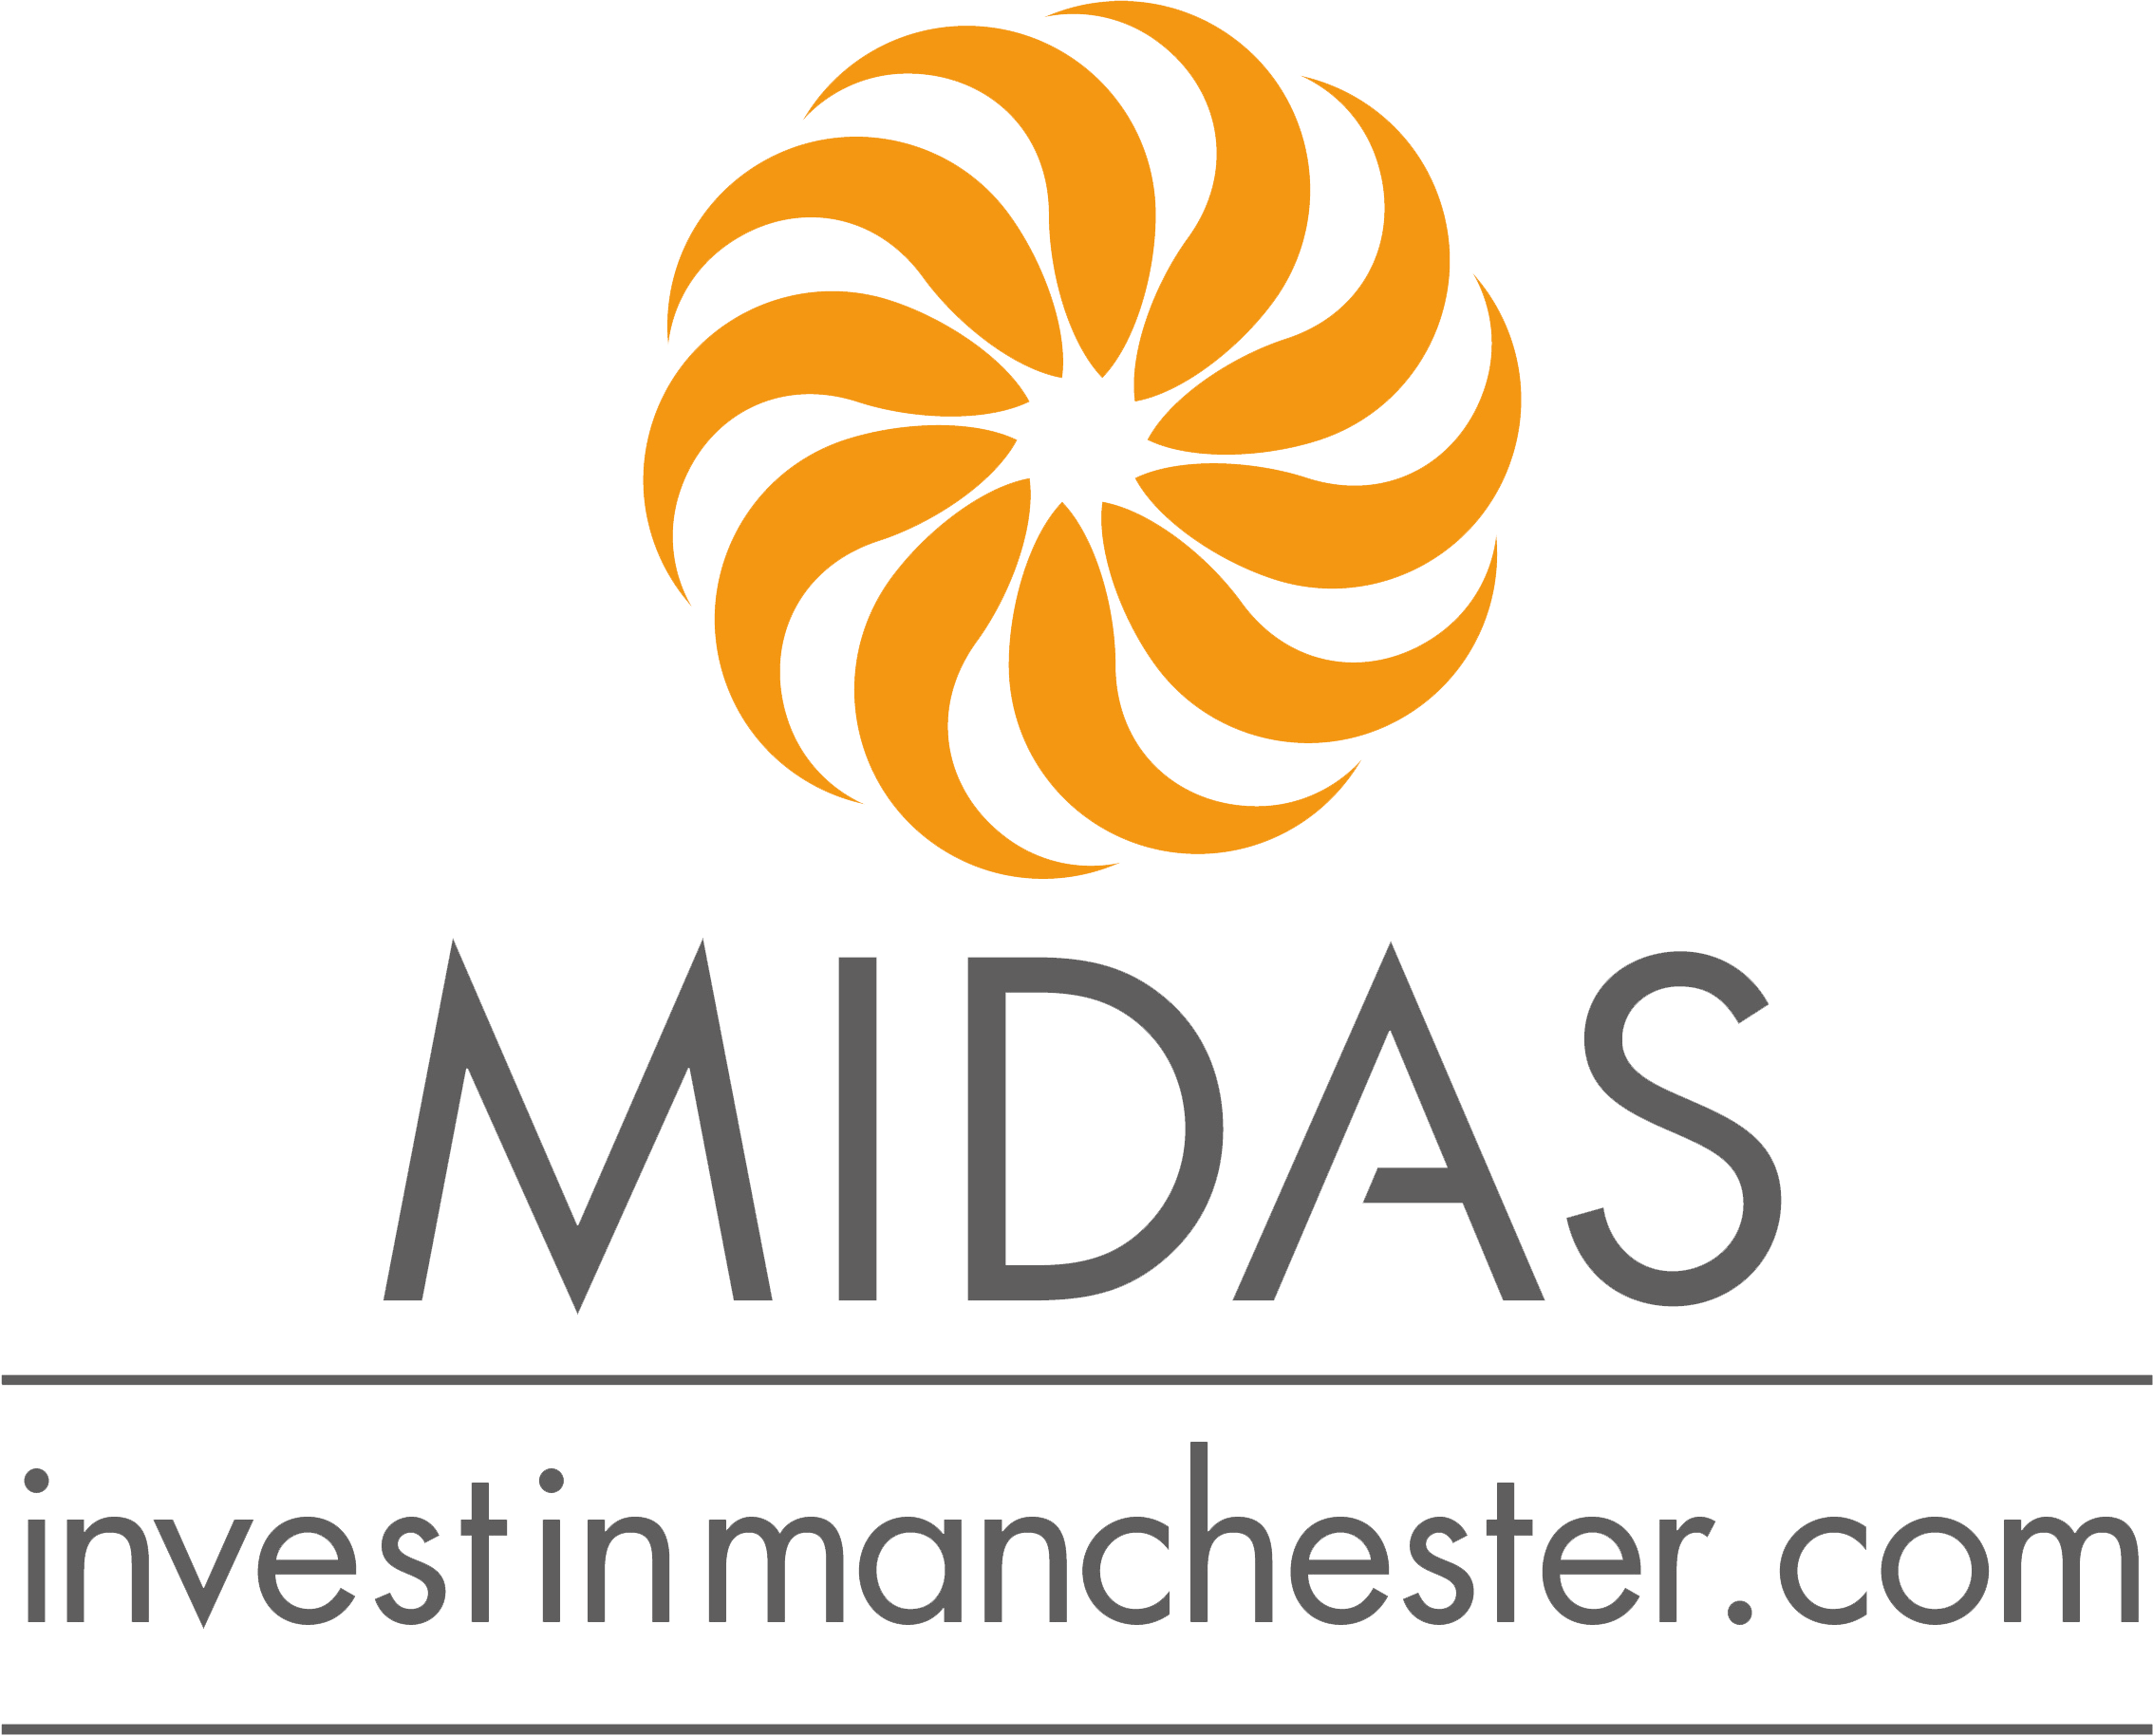 MIDAS Manchester, United Kingdom - Manchester's inward investment agency